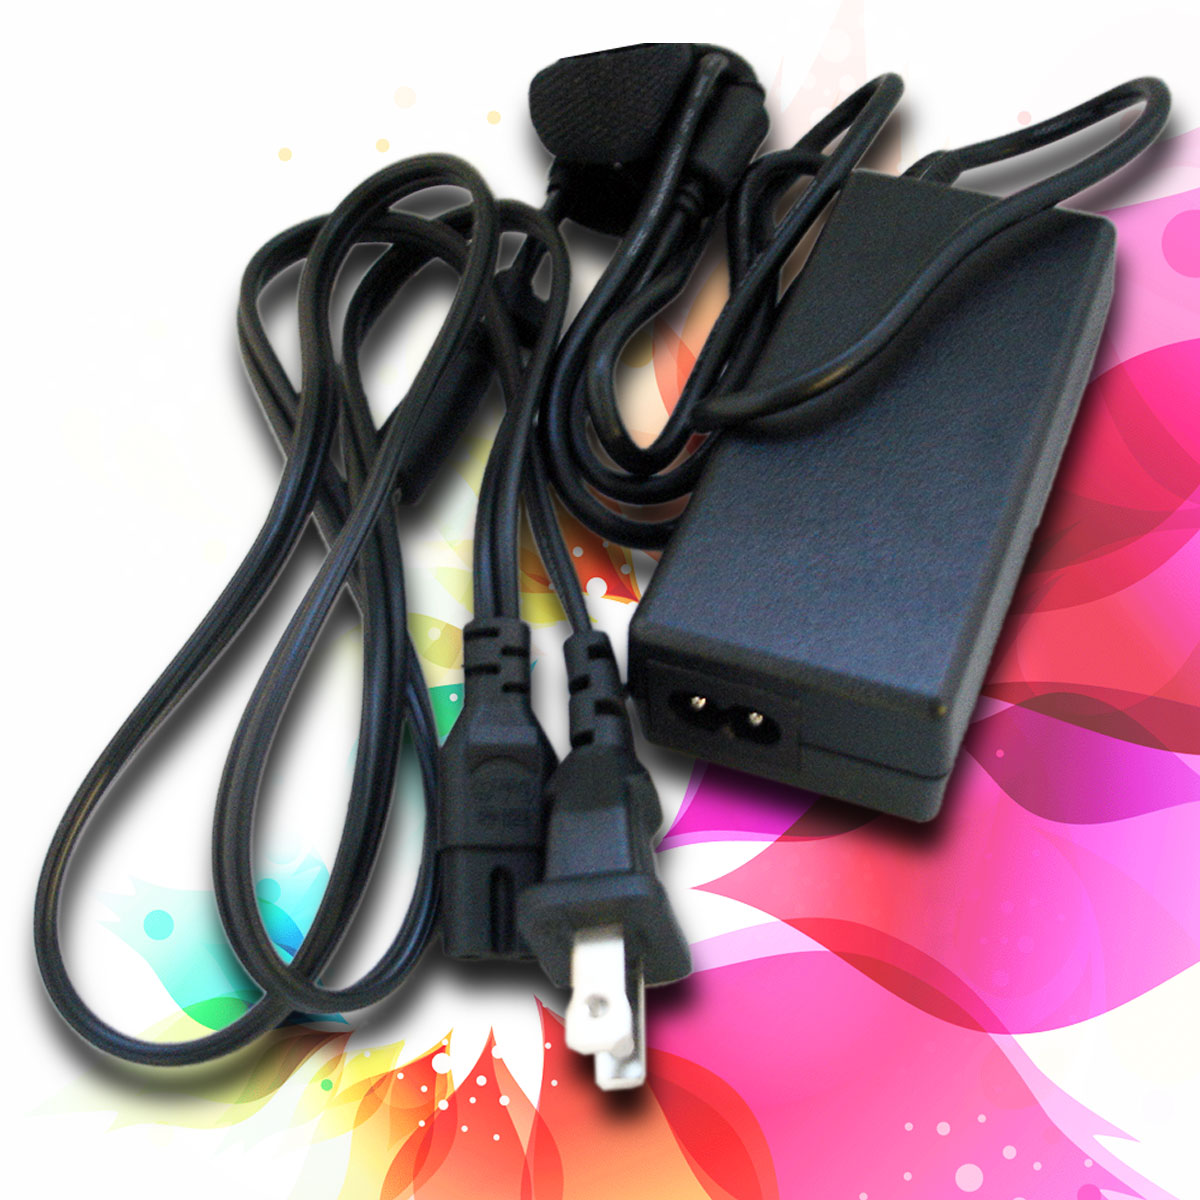 AC Power Adapter for HP Pavilion G60-247cl G60-441us G60-533cl G60-635dx w Cord